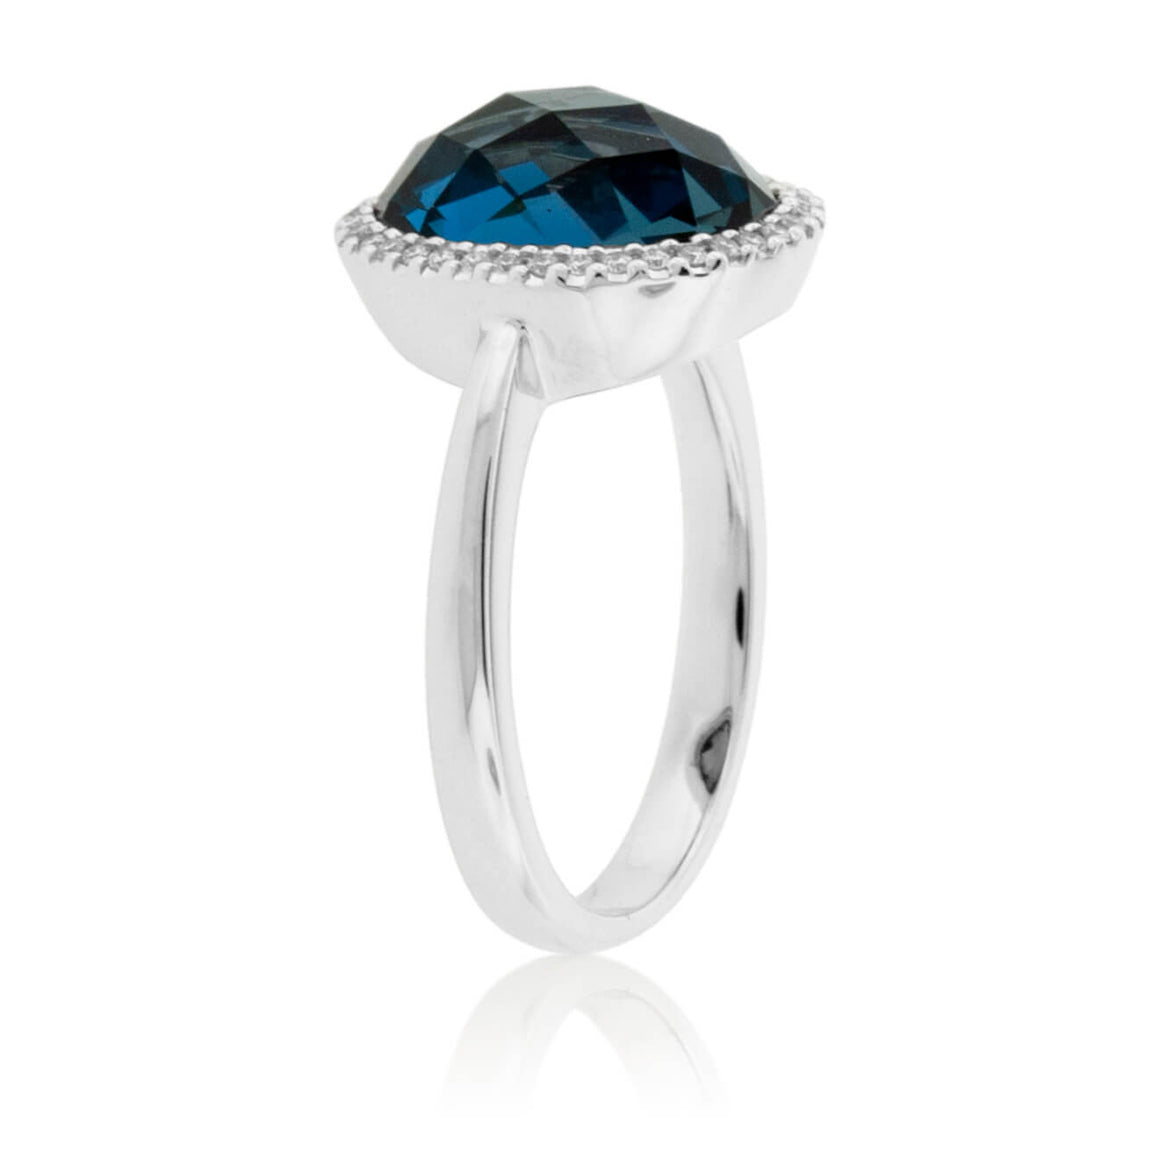 Checkerboard Cut London Blue Topaz Halo Style Ring